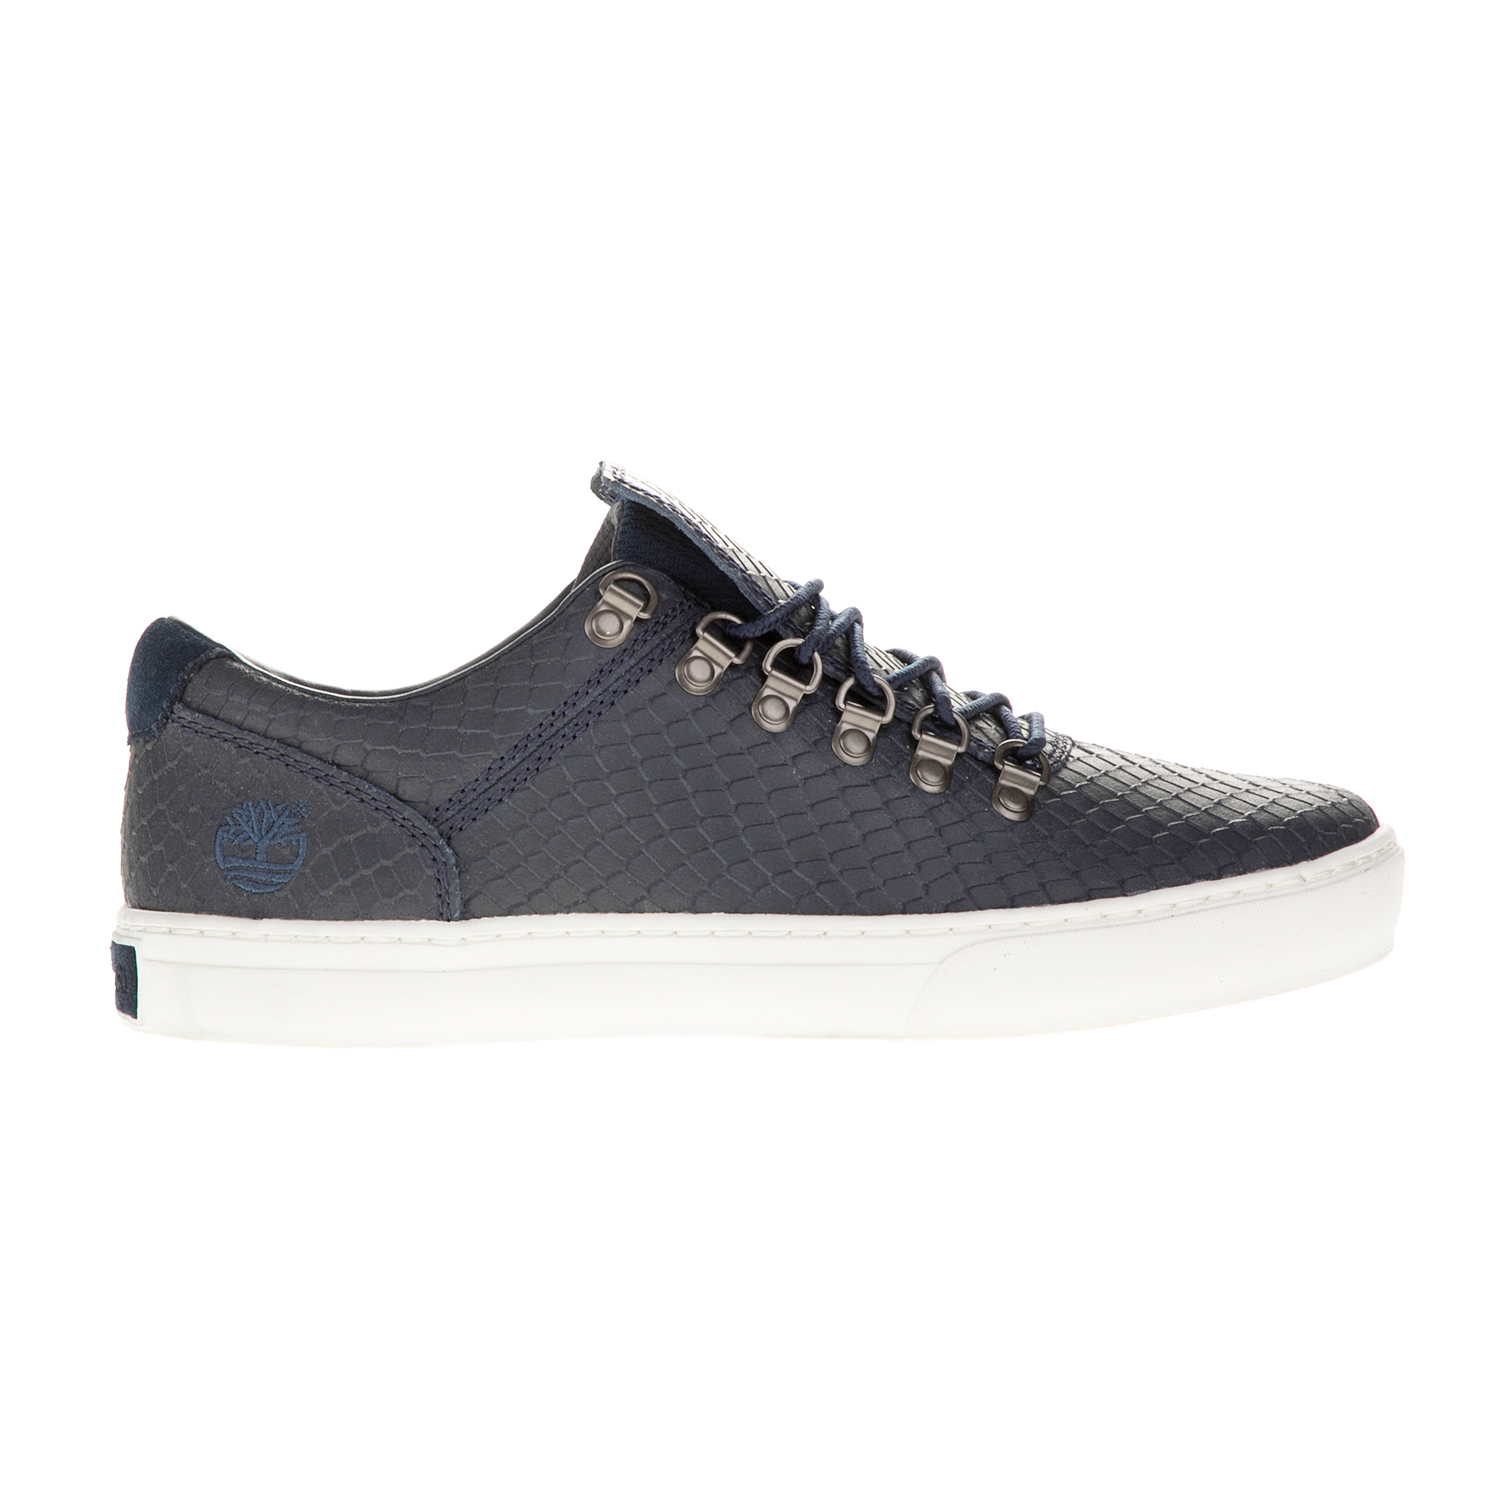 TIMBERLAND – Ανδρικά sneakers TIMBERLAND A1GR8 ADVENTURE CUPSOLE μπλε